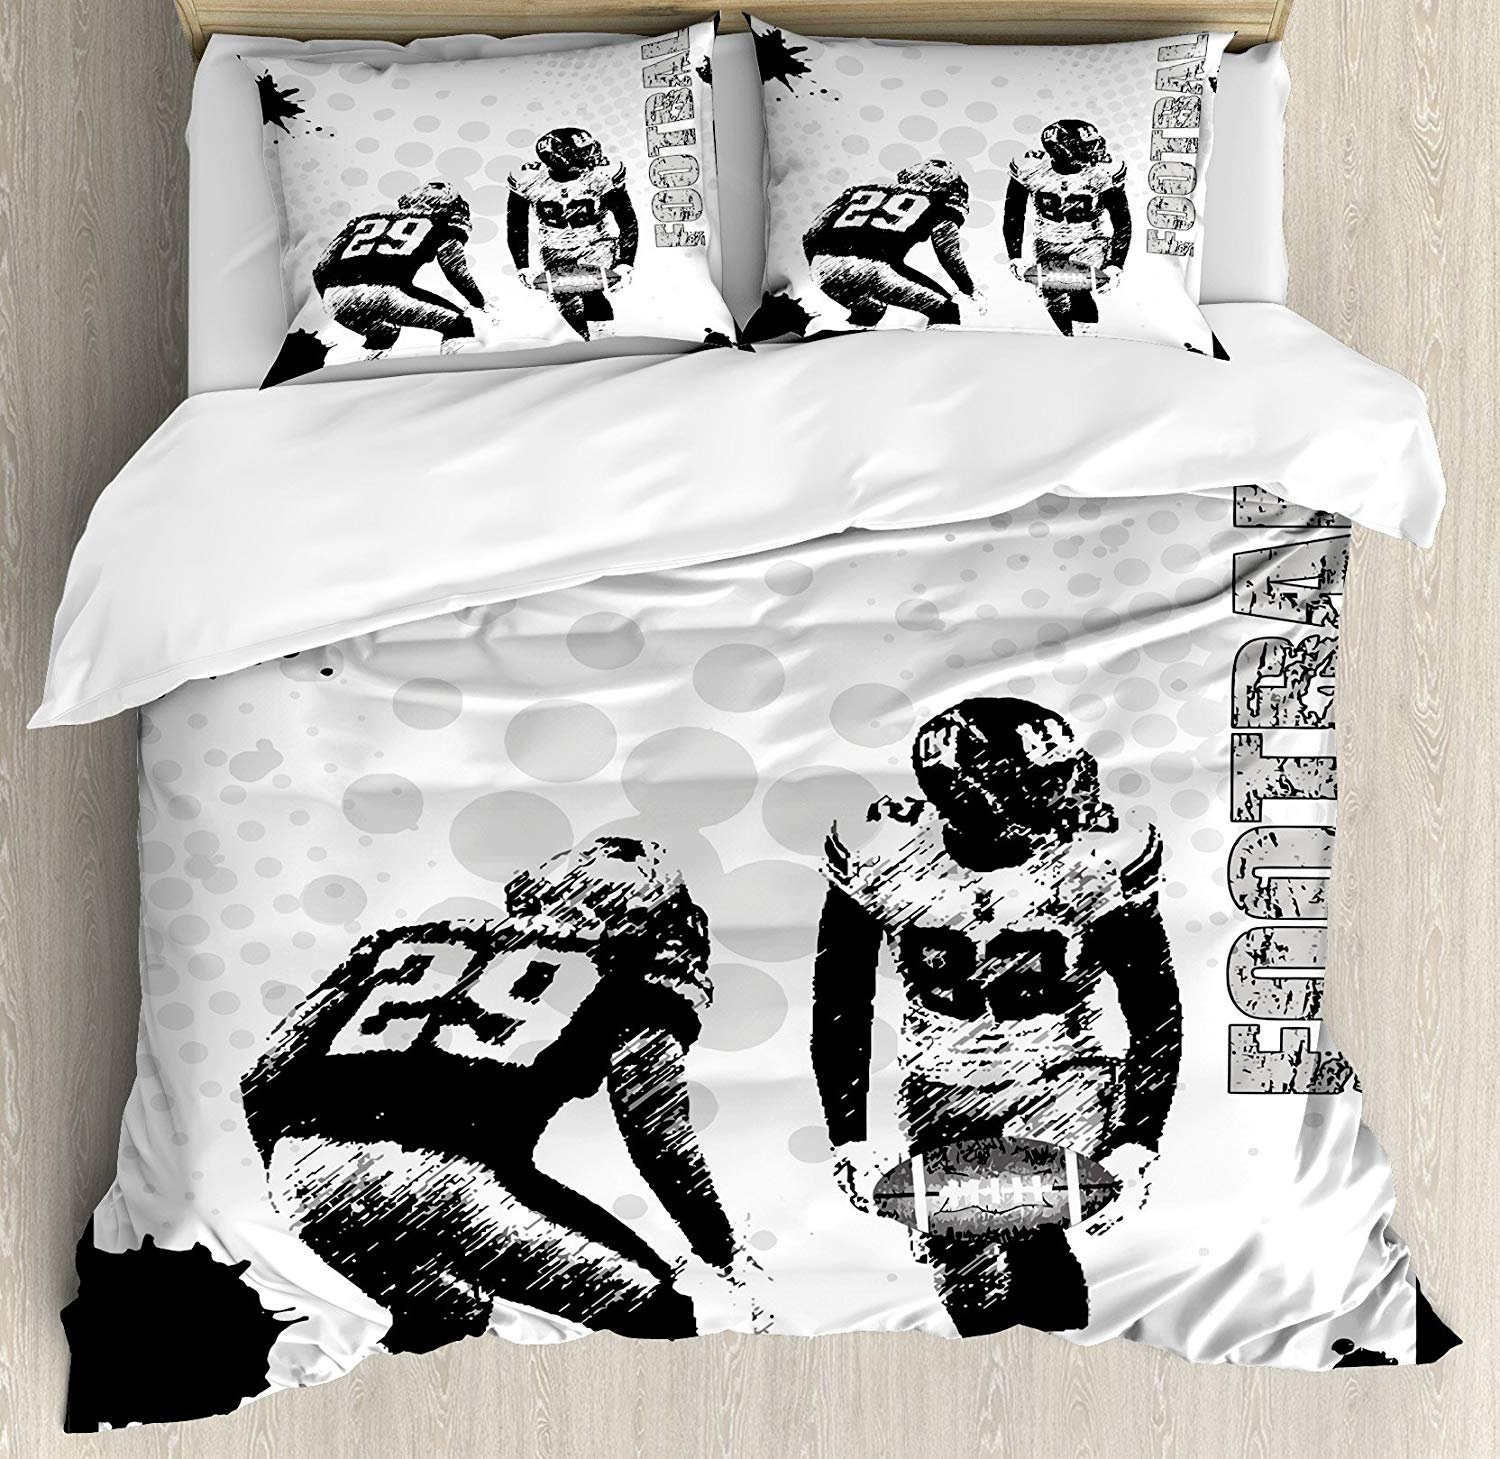 Style 1260 Twin Sports Duvet Cover Set, Grungy American Football Image International Team World Cup Kick Off Play Speed Victory, A Decorative 3 Piece Bedding Set with 2 Pillow Shams, Black White Twin